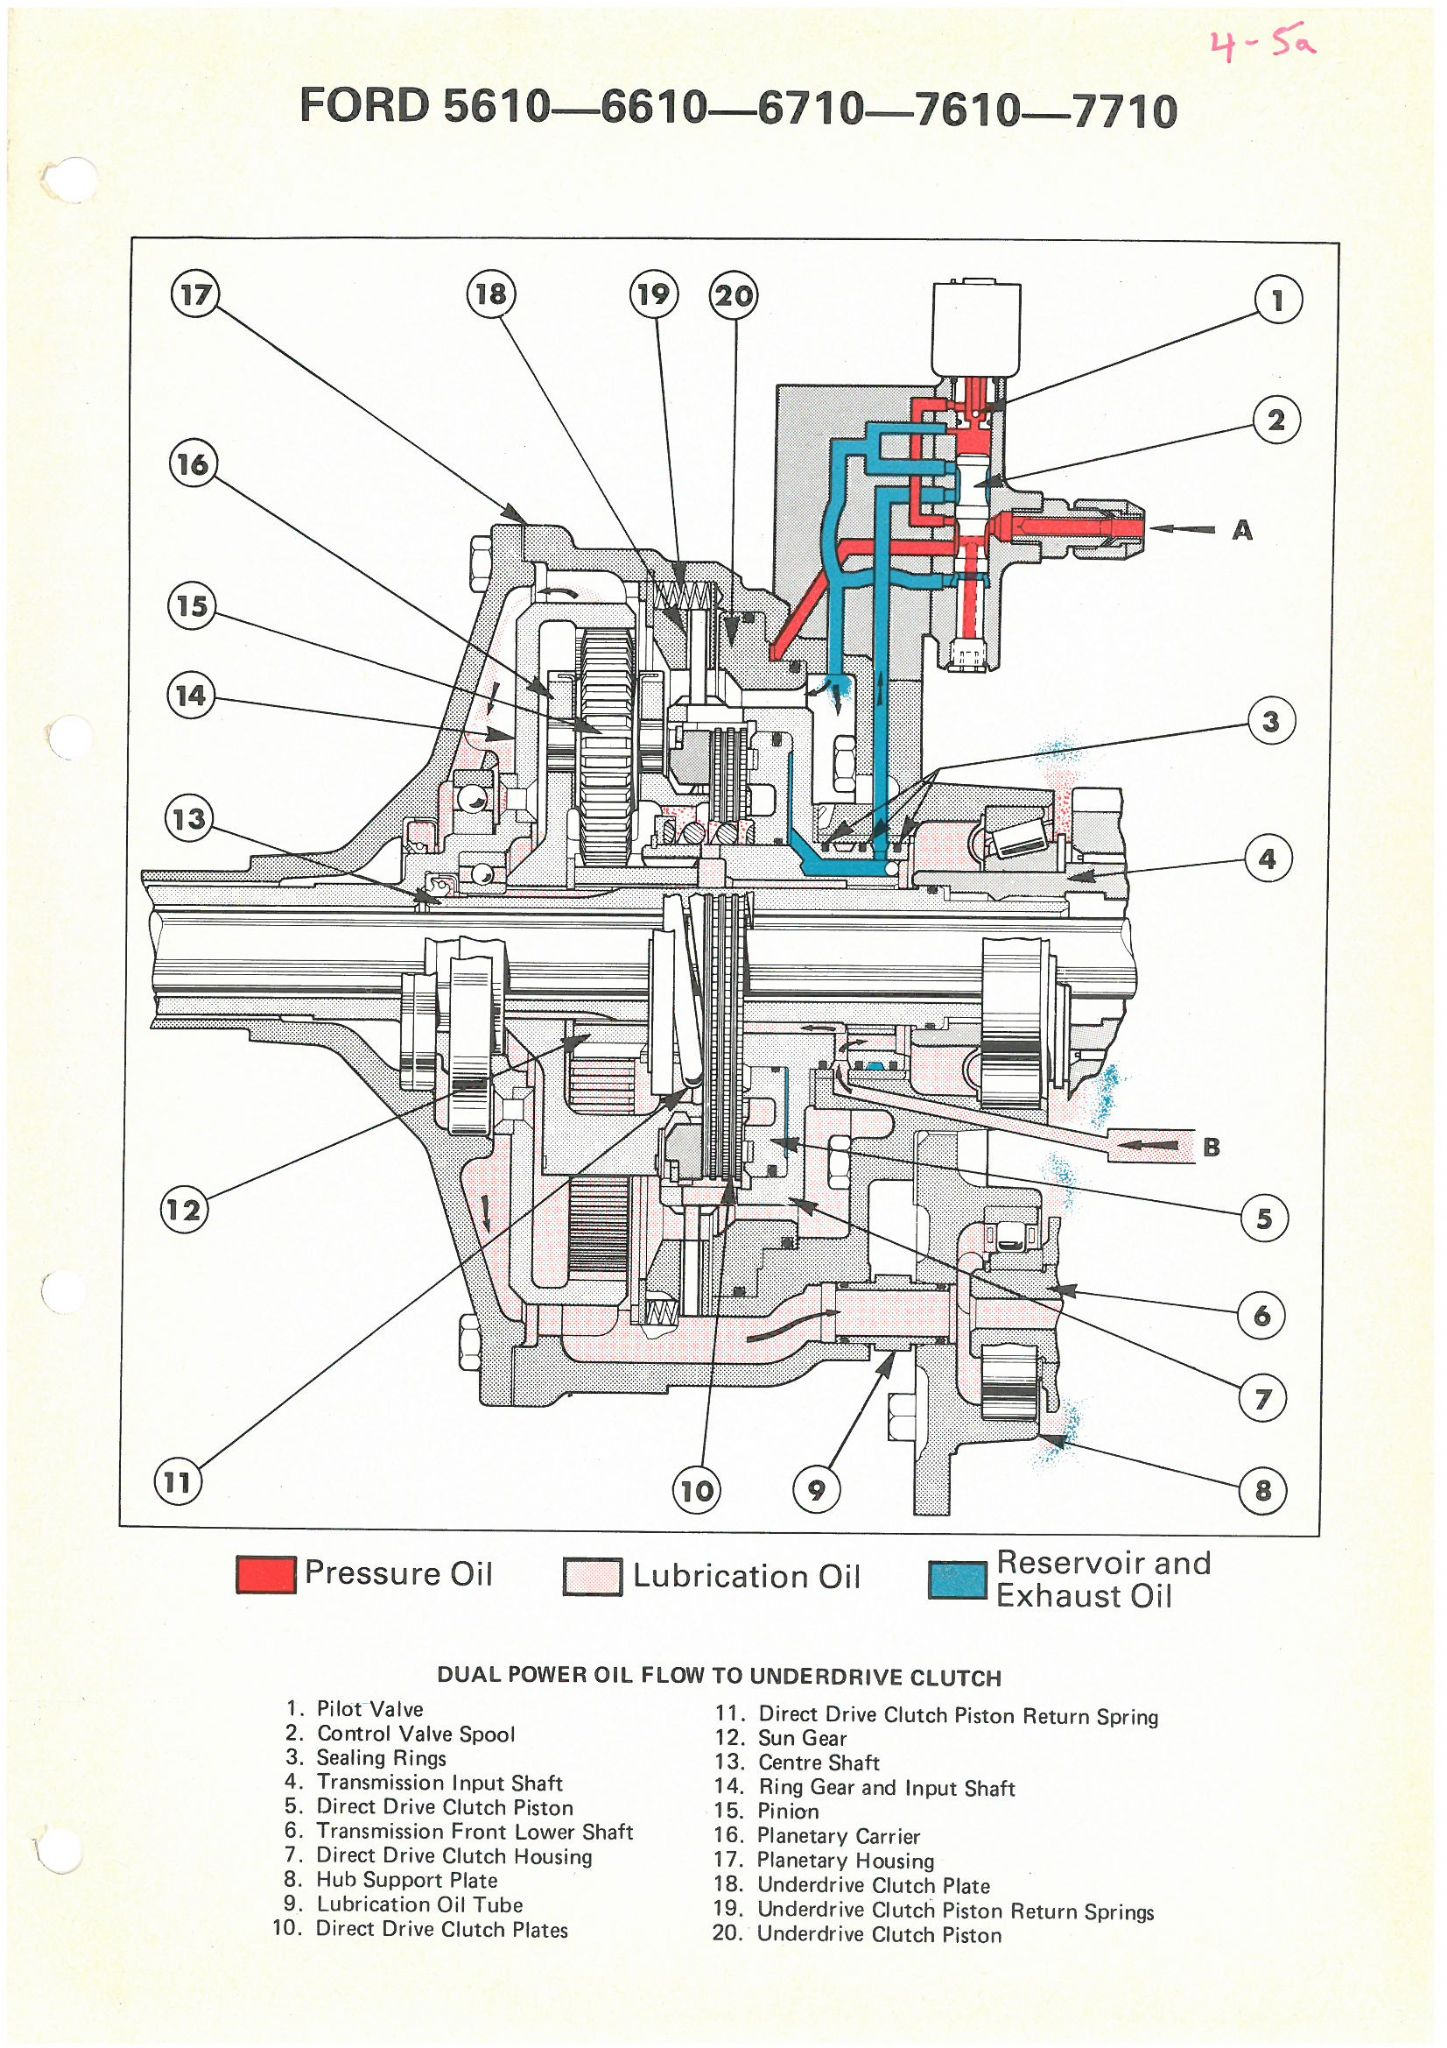 7700 Ford sel Tractor Wiring Harness Diagram - My Wiring ...  Ford Tractor Alternator Wiring Diagram on ford 3000 tractor parts diagram, ford 4600 tractor parts diagram, 601 ford tractor plug wires replacing, tractor alternator wiring diagram, 601 ford tractor specifications, 601 ford tractor starter motor, 601 ford tractor fuel tank, 601 ford tractor radiator, ford tractor electrical diagram, 601 ford tractor distributor, 801 ford tractor parts diagram, 601 ford tractor parts, ford 2000 tractor parts diagram, ford 600 tractor parts diagram,